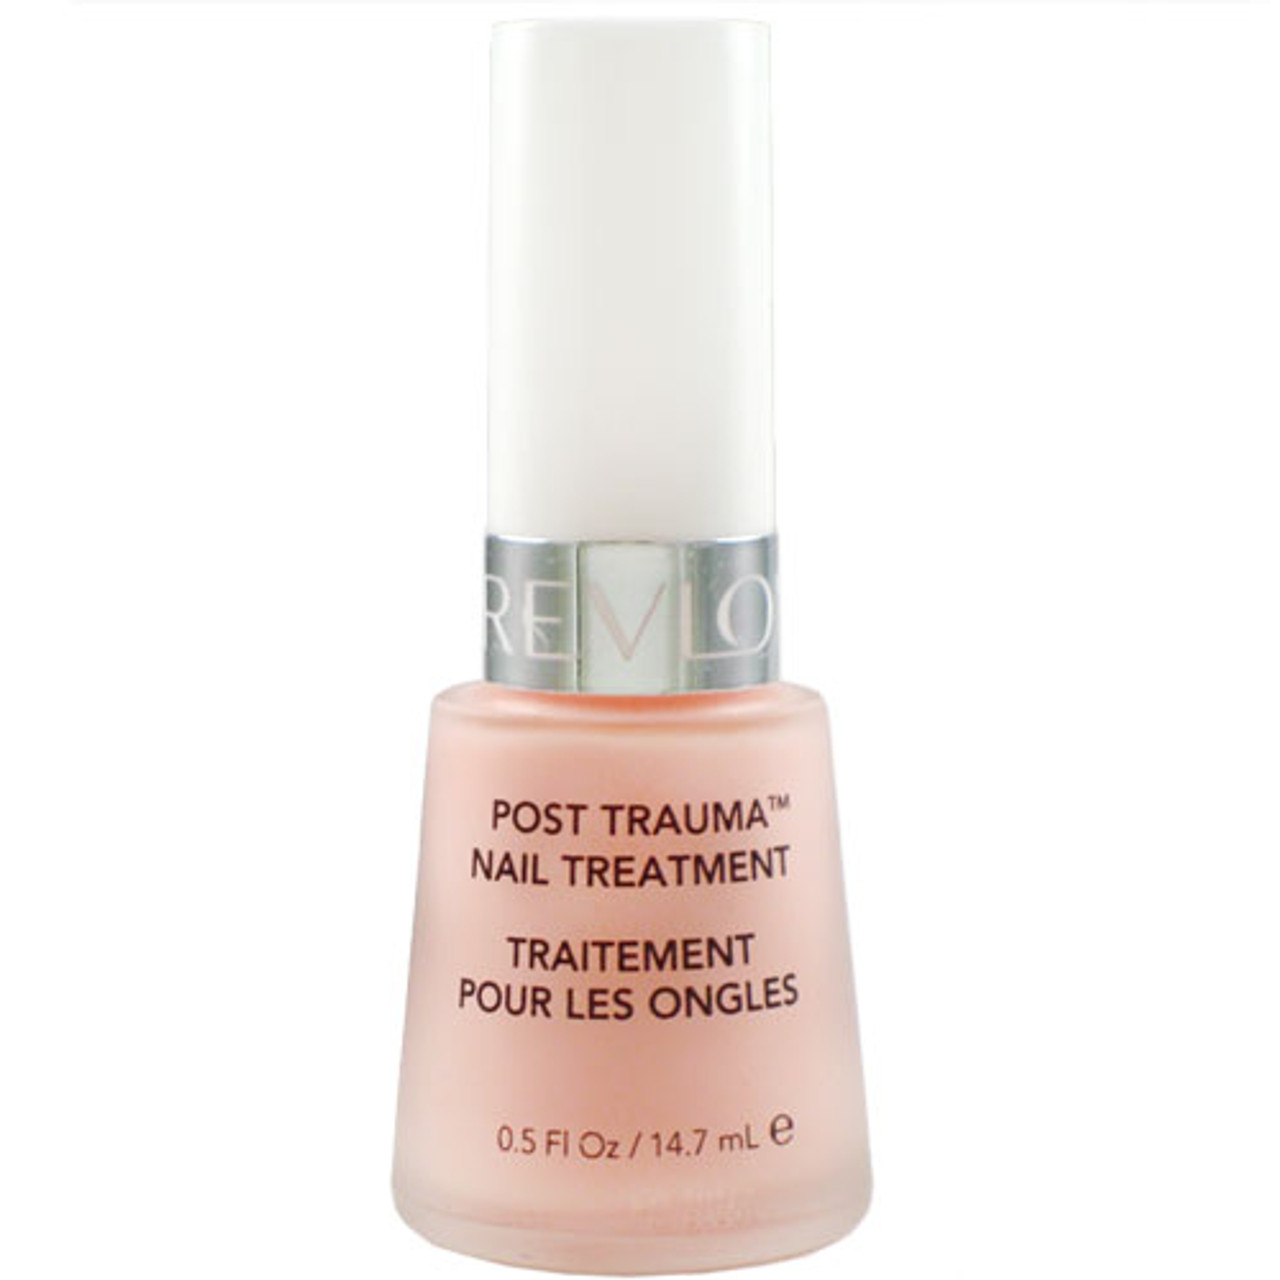 Revlon Post Trauma Nail Treatment, 0.5 fl. oz. - BuyMeBeauty.com